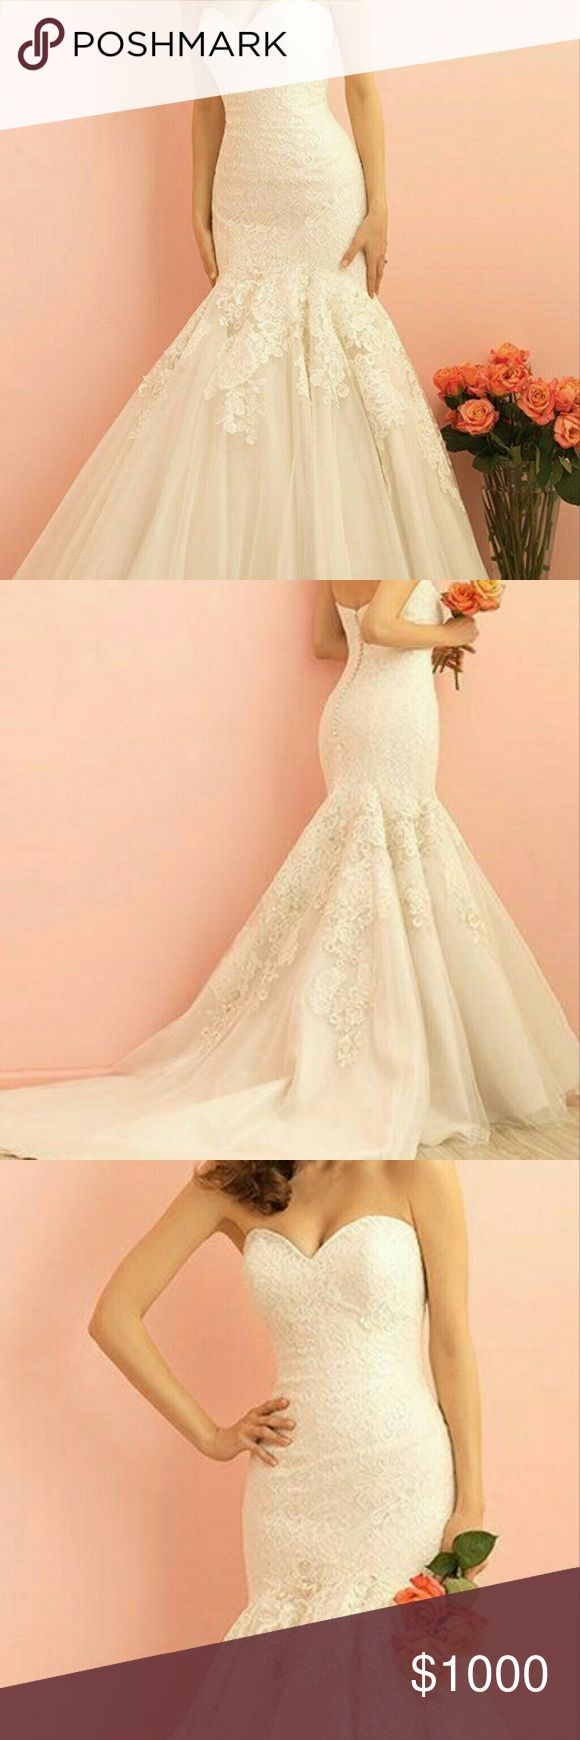 Allure Romance Wedding Gown Allure Romance Wedding gown size 12 (fits size 8). Never worn. Paid $2,856.00 still has tags. Color: Chocolate Ivory. NWT. Allure Bridals Dresses Wedding